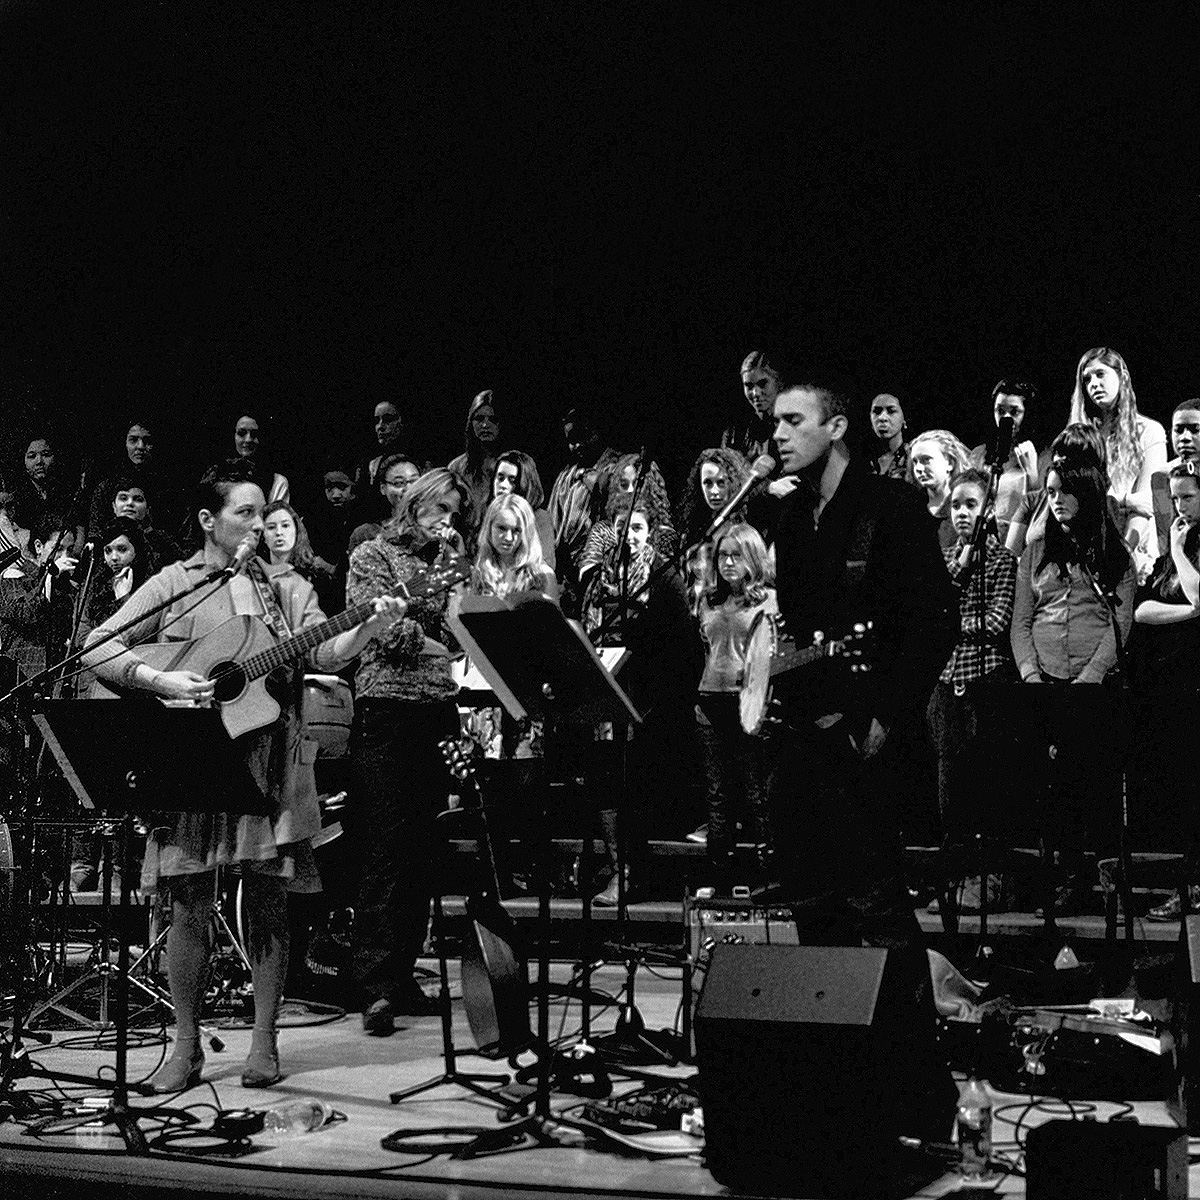 shara worden, sufjan stevens & brooklyn youth chorus